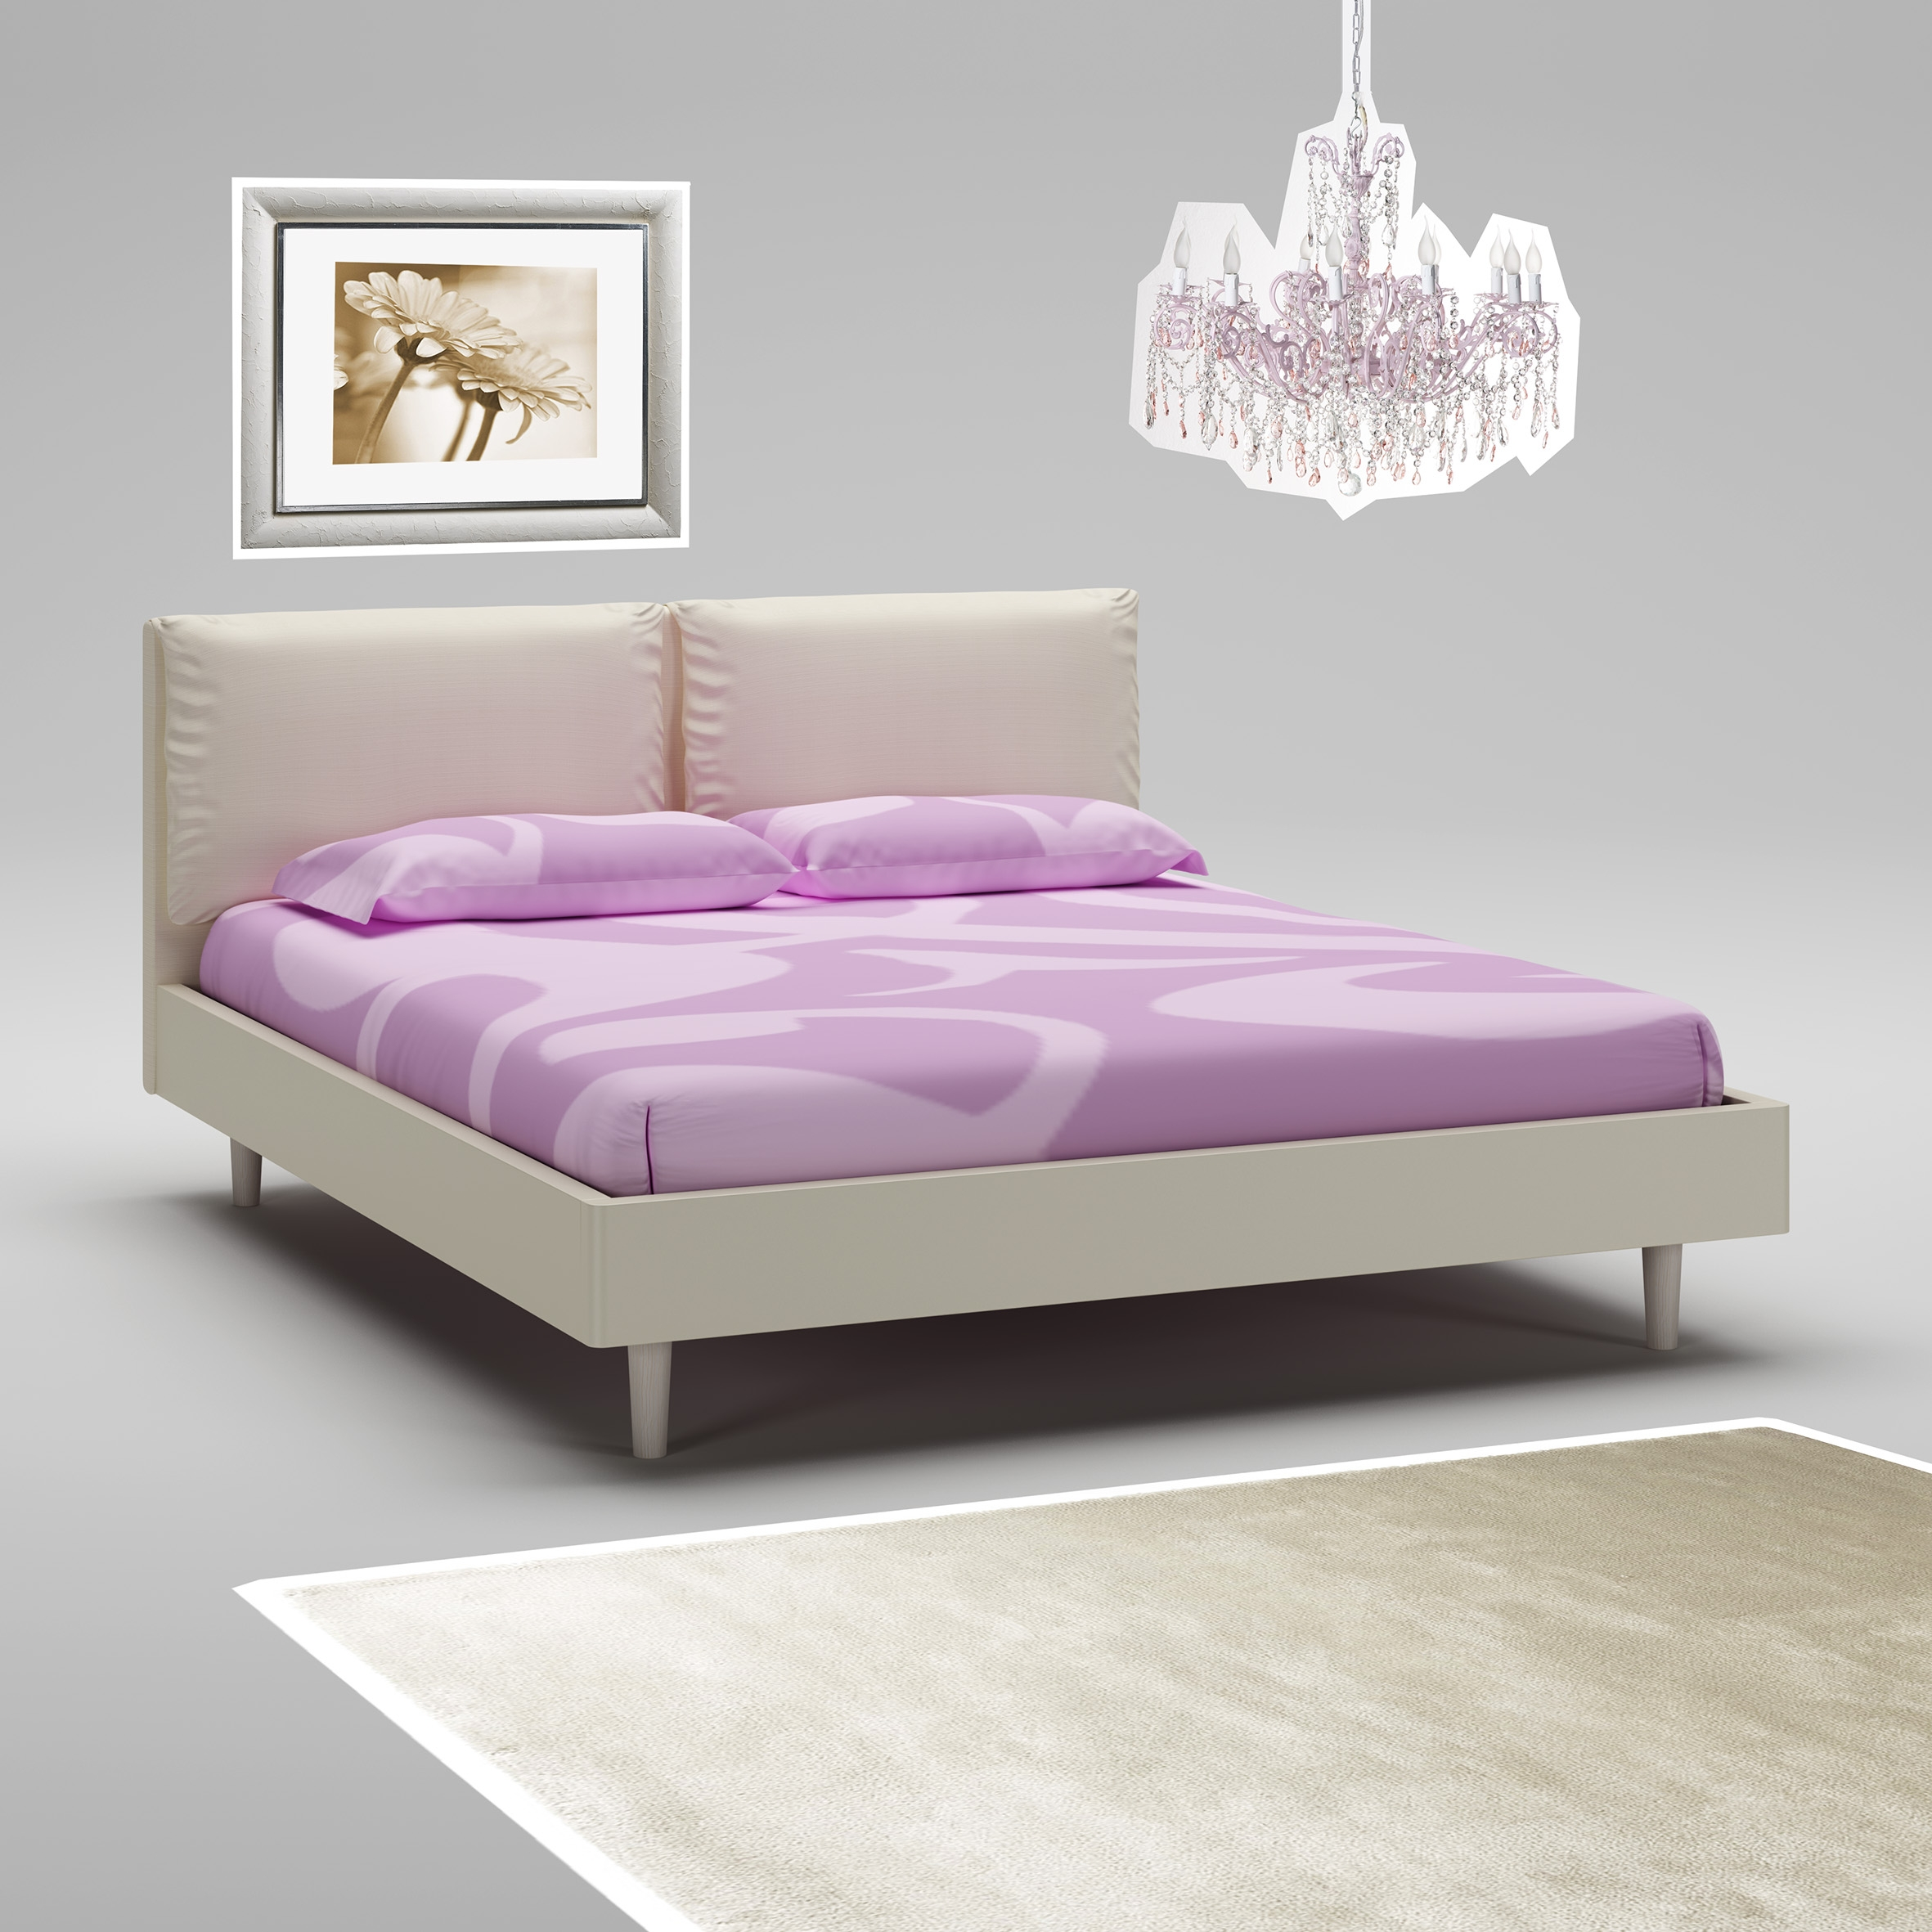 lit adulte cadre t te de lit ivoire moretti compact. Black Bedroom Furniture Sets. Home Design Ideas